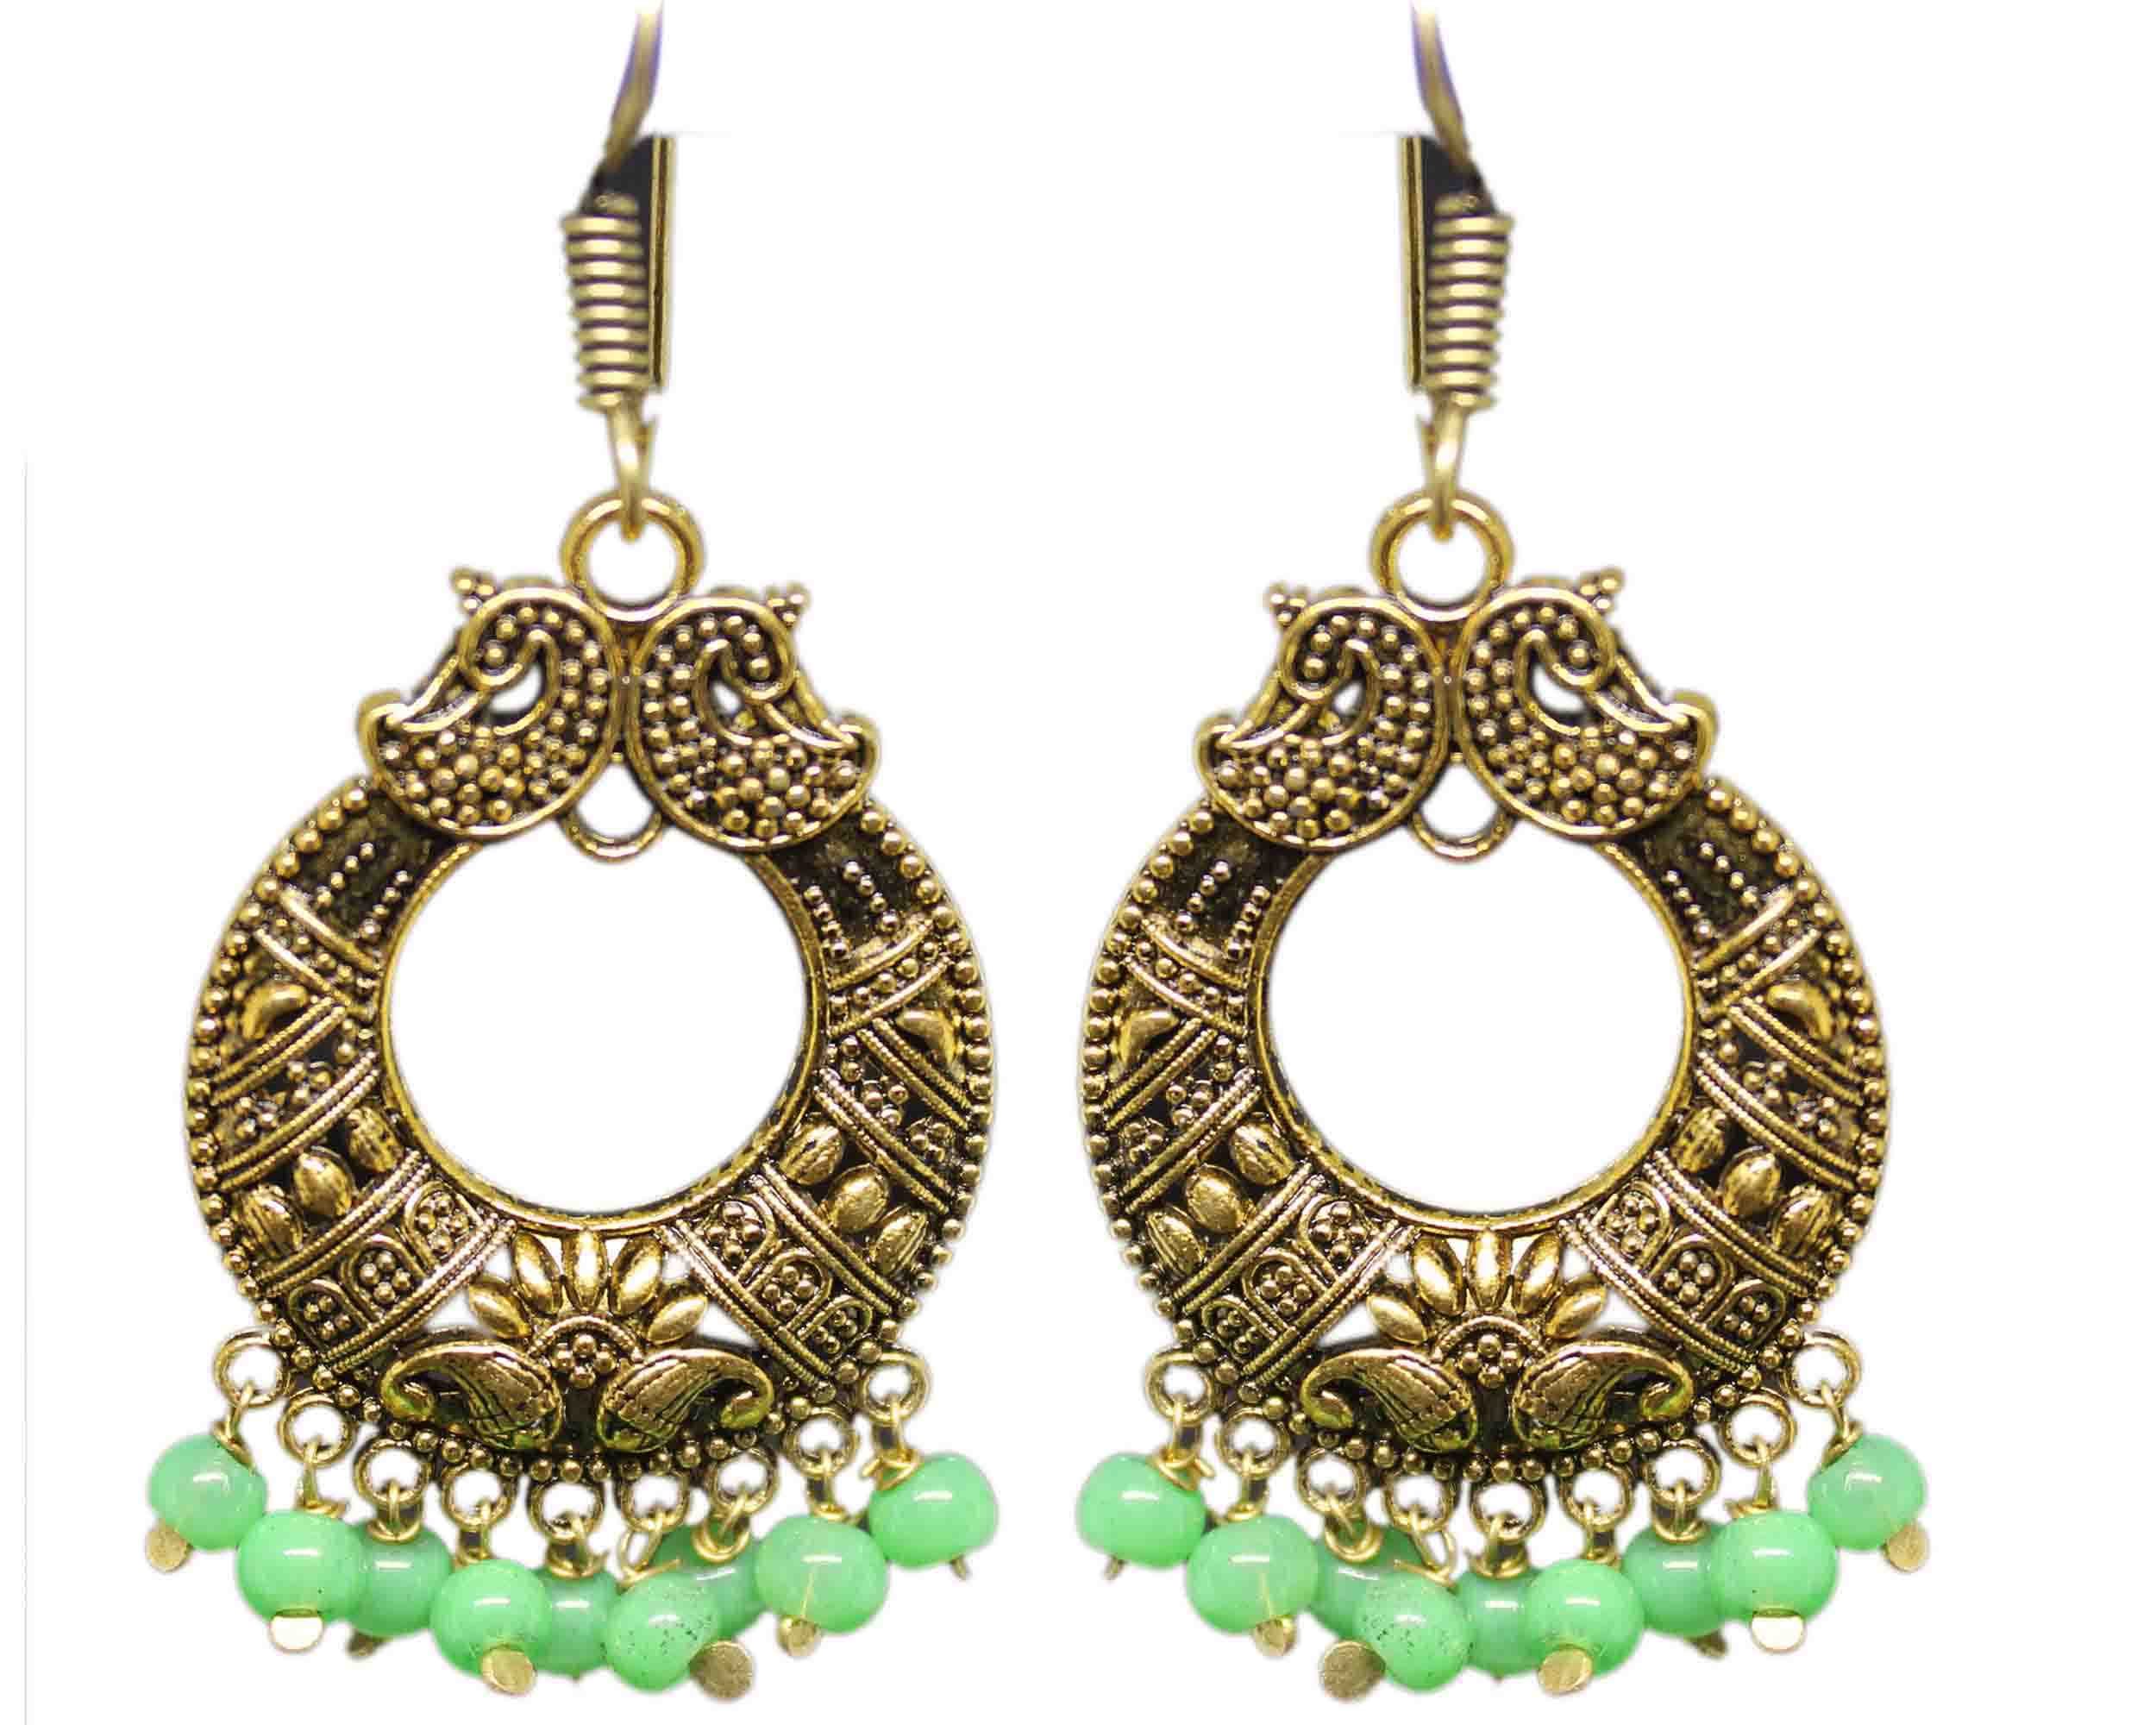 Silver Coated Chandbali Earrings with Green Beads